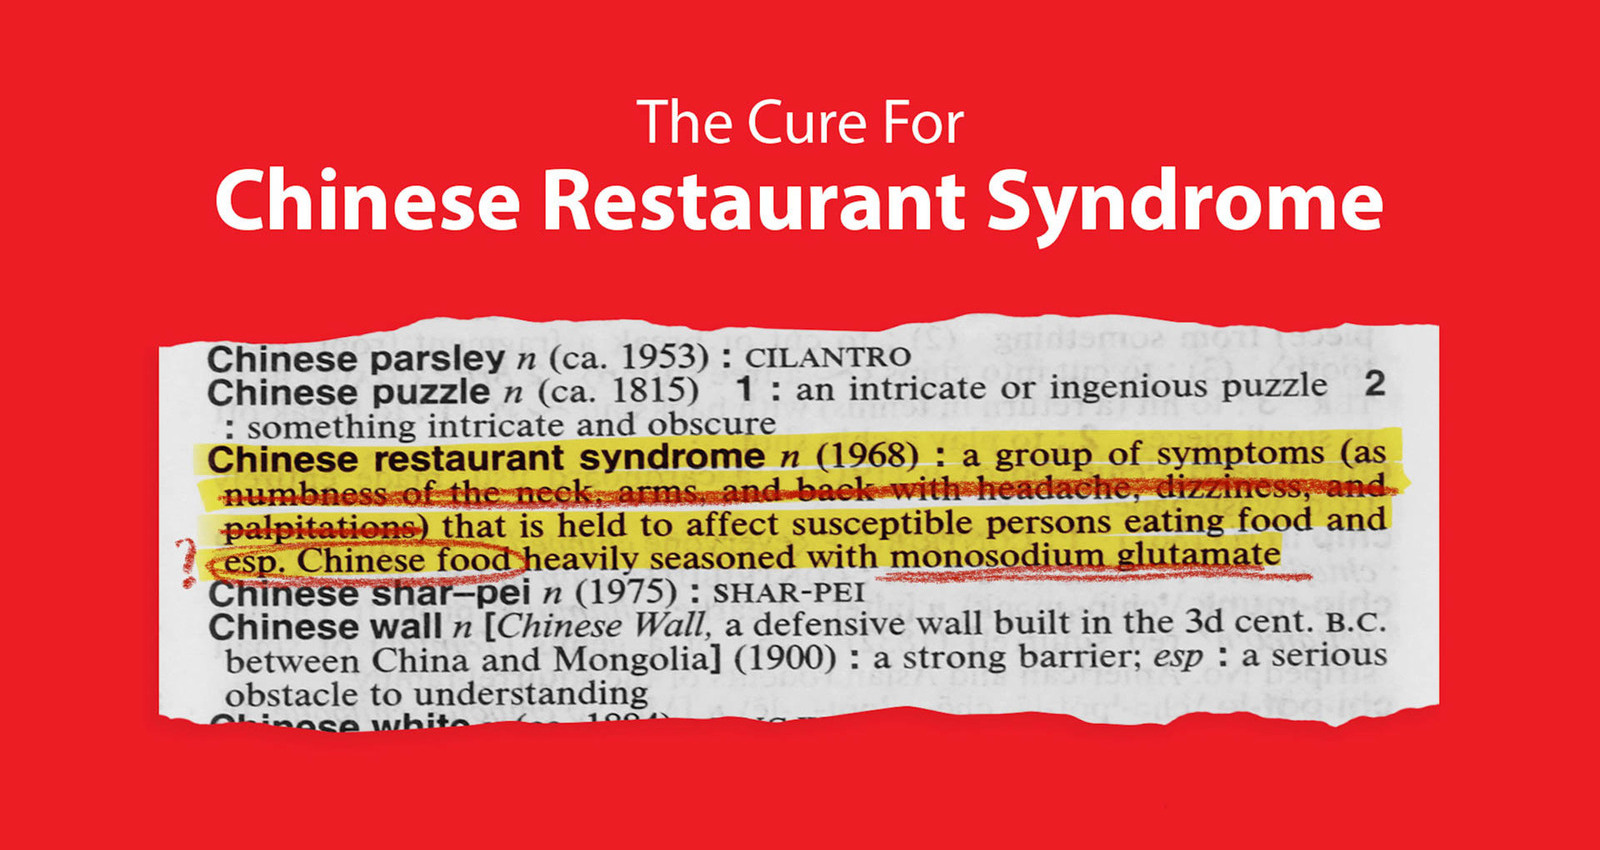 The Cure for Chinese Restaurant Syndrome